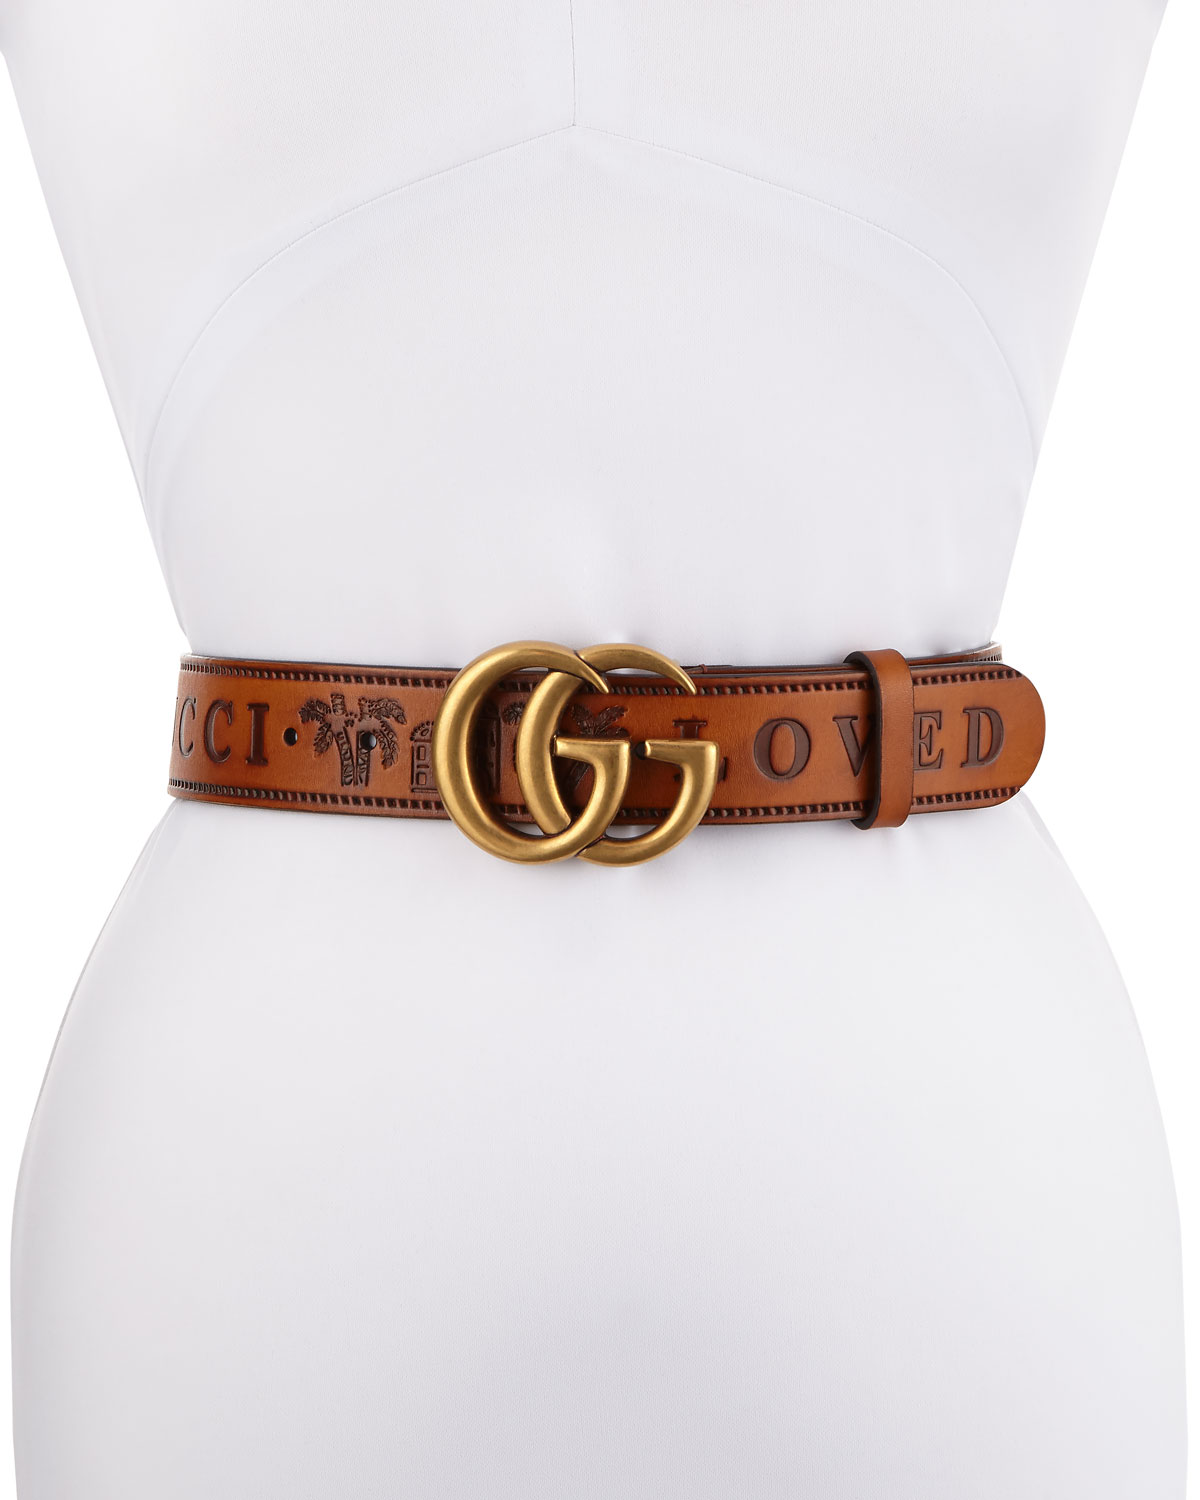 c509a07f5 Gucci Gucci Loved Wide Leather Belt w/ Double GG Buckle   Neiman Marcus